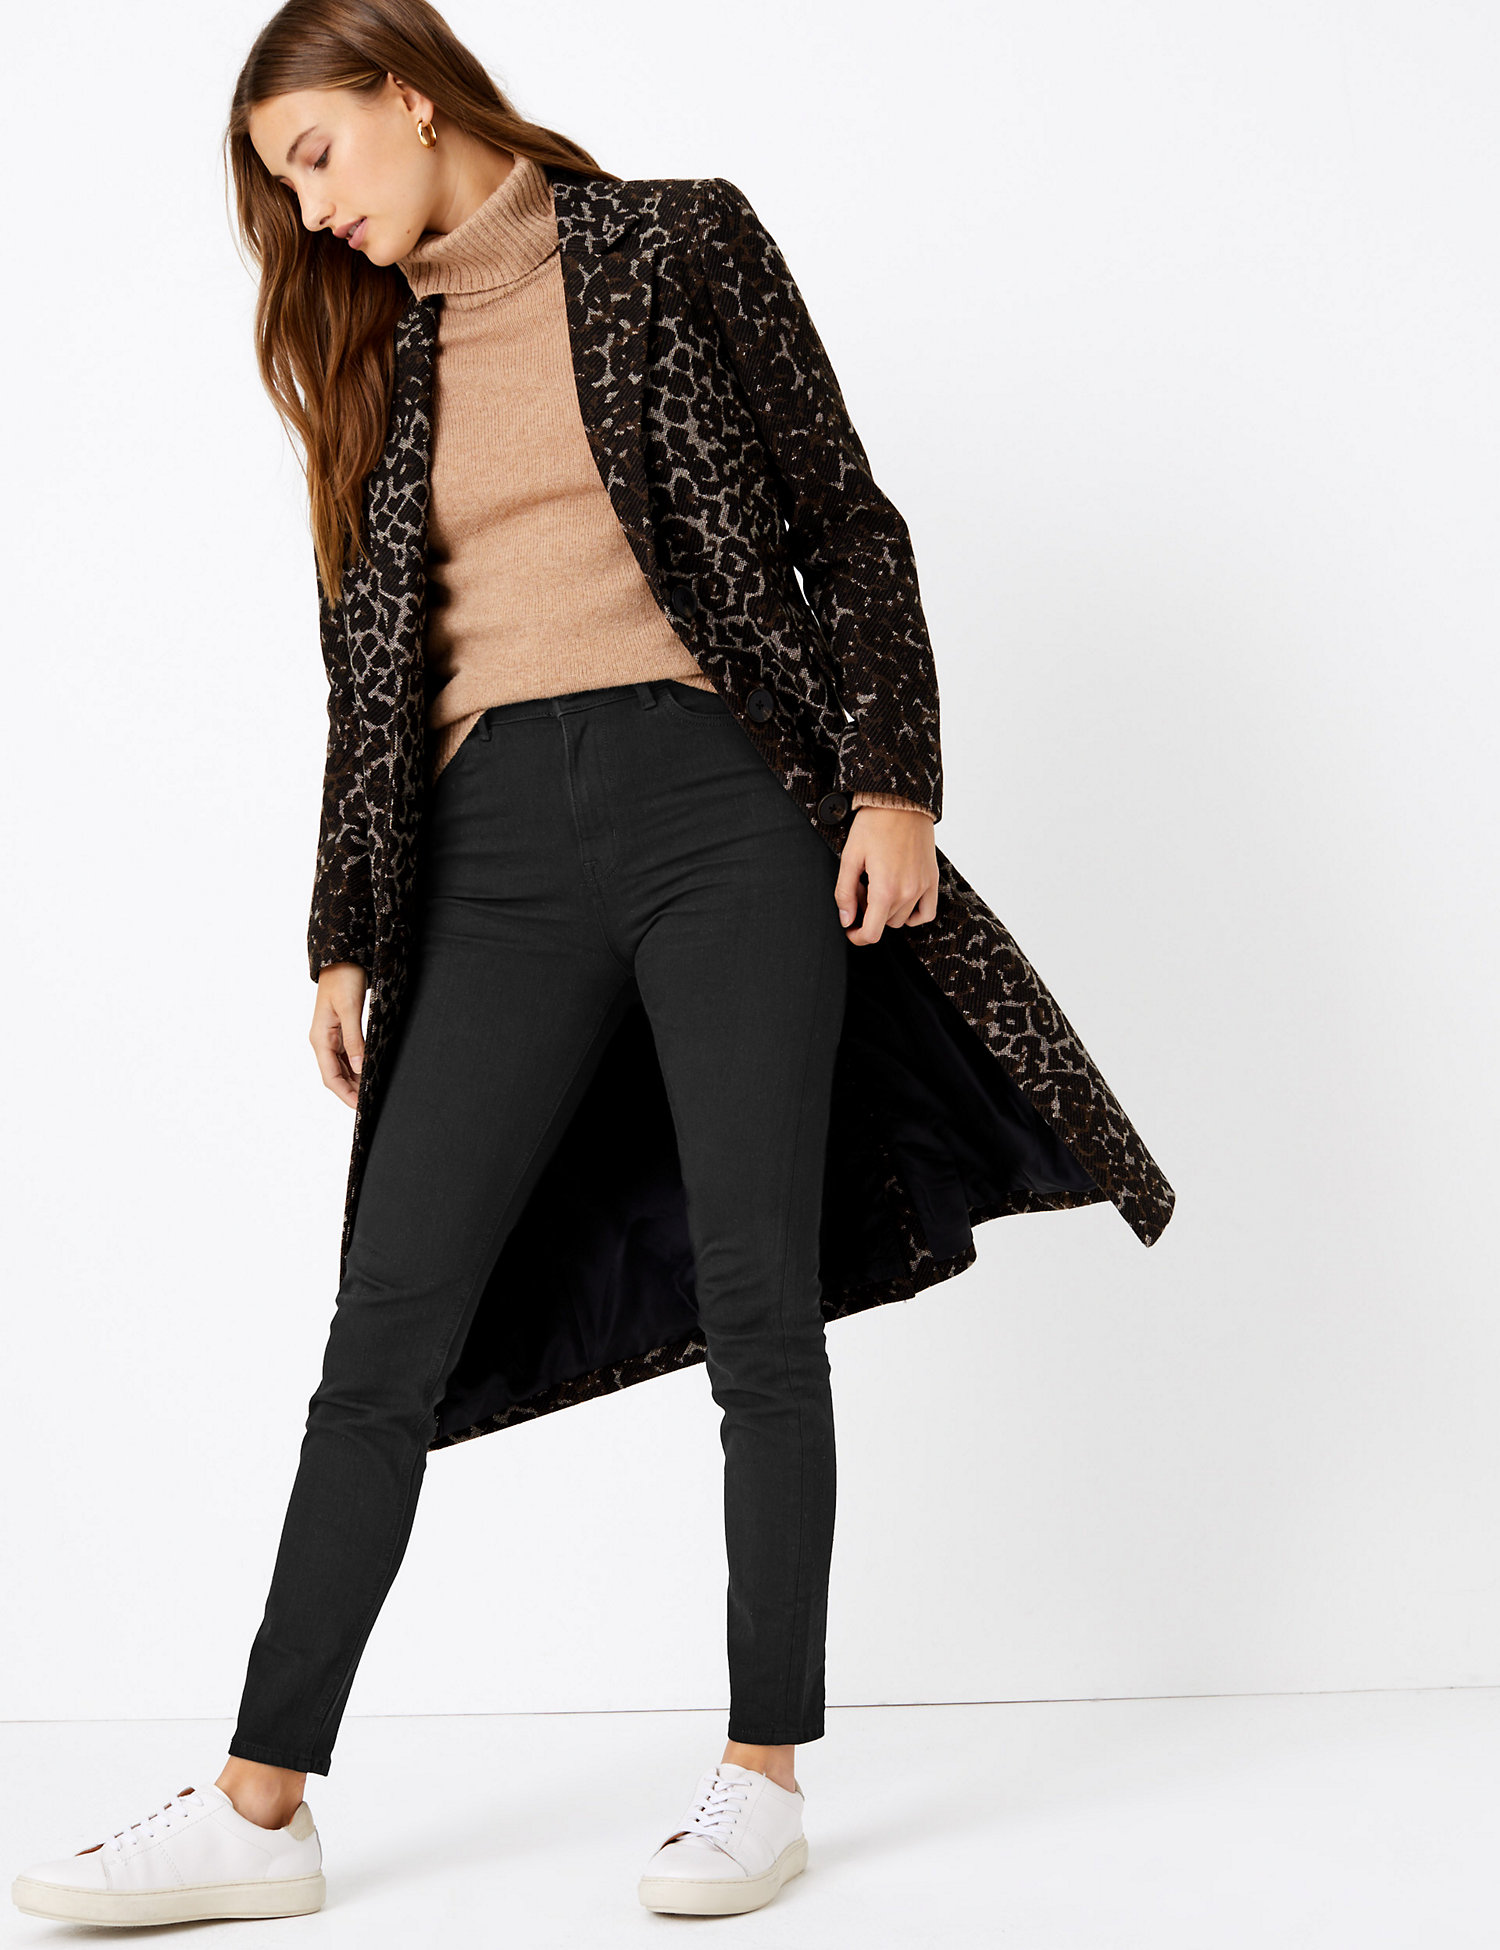 M&S COLLECTION Magic Shaping High Waisted Skinny Jeans